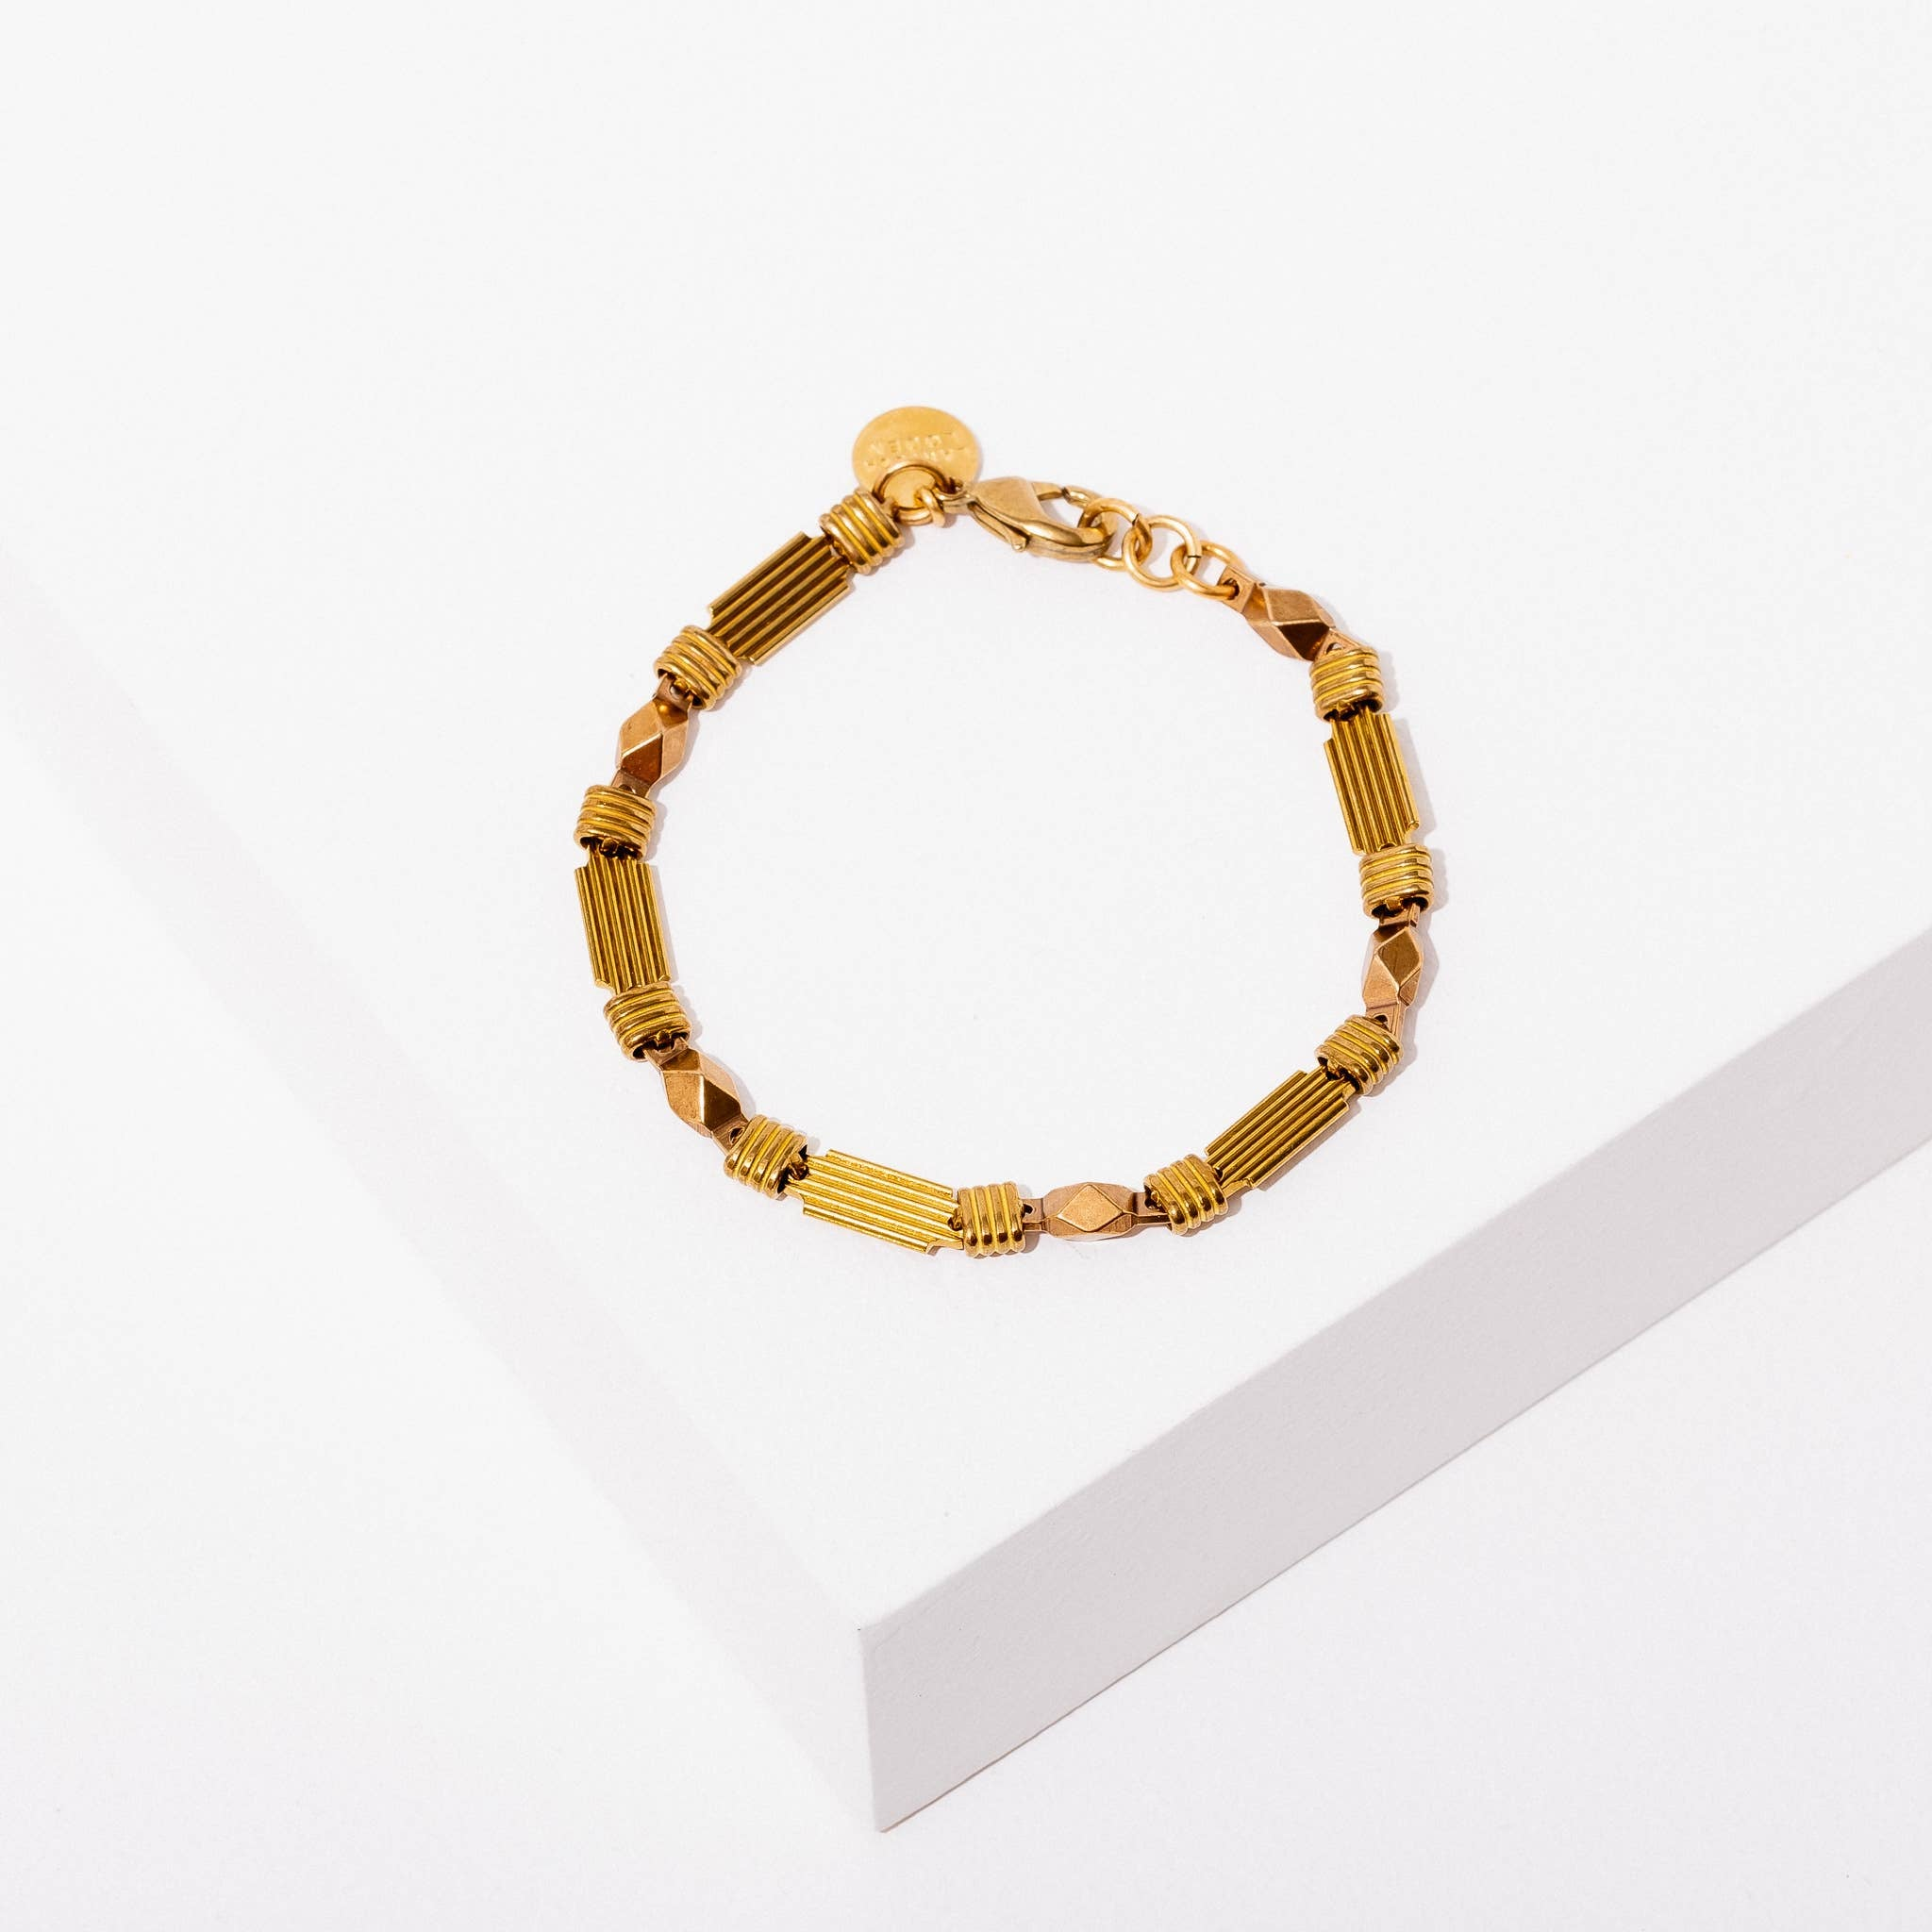 The Lupita Bracelet by Larissa Loden